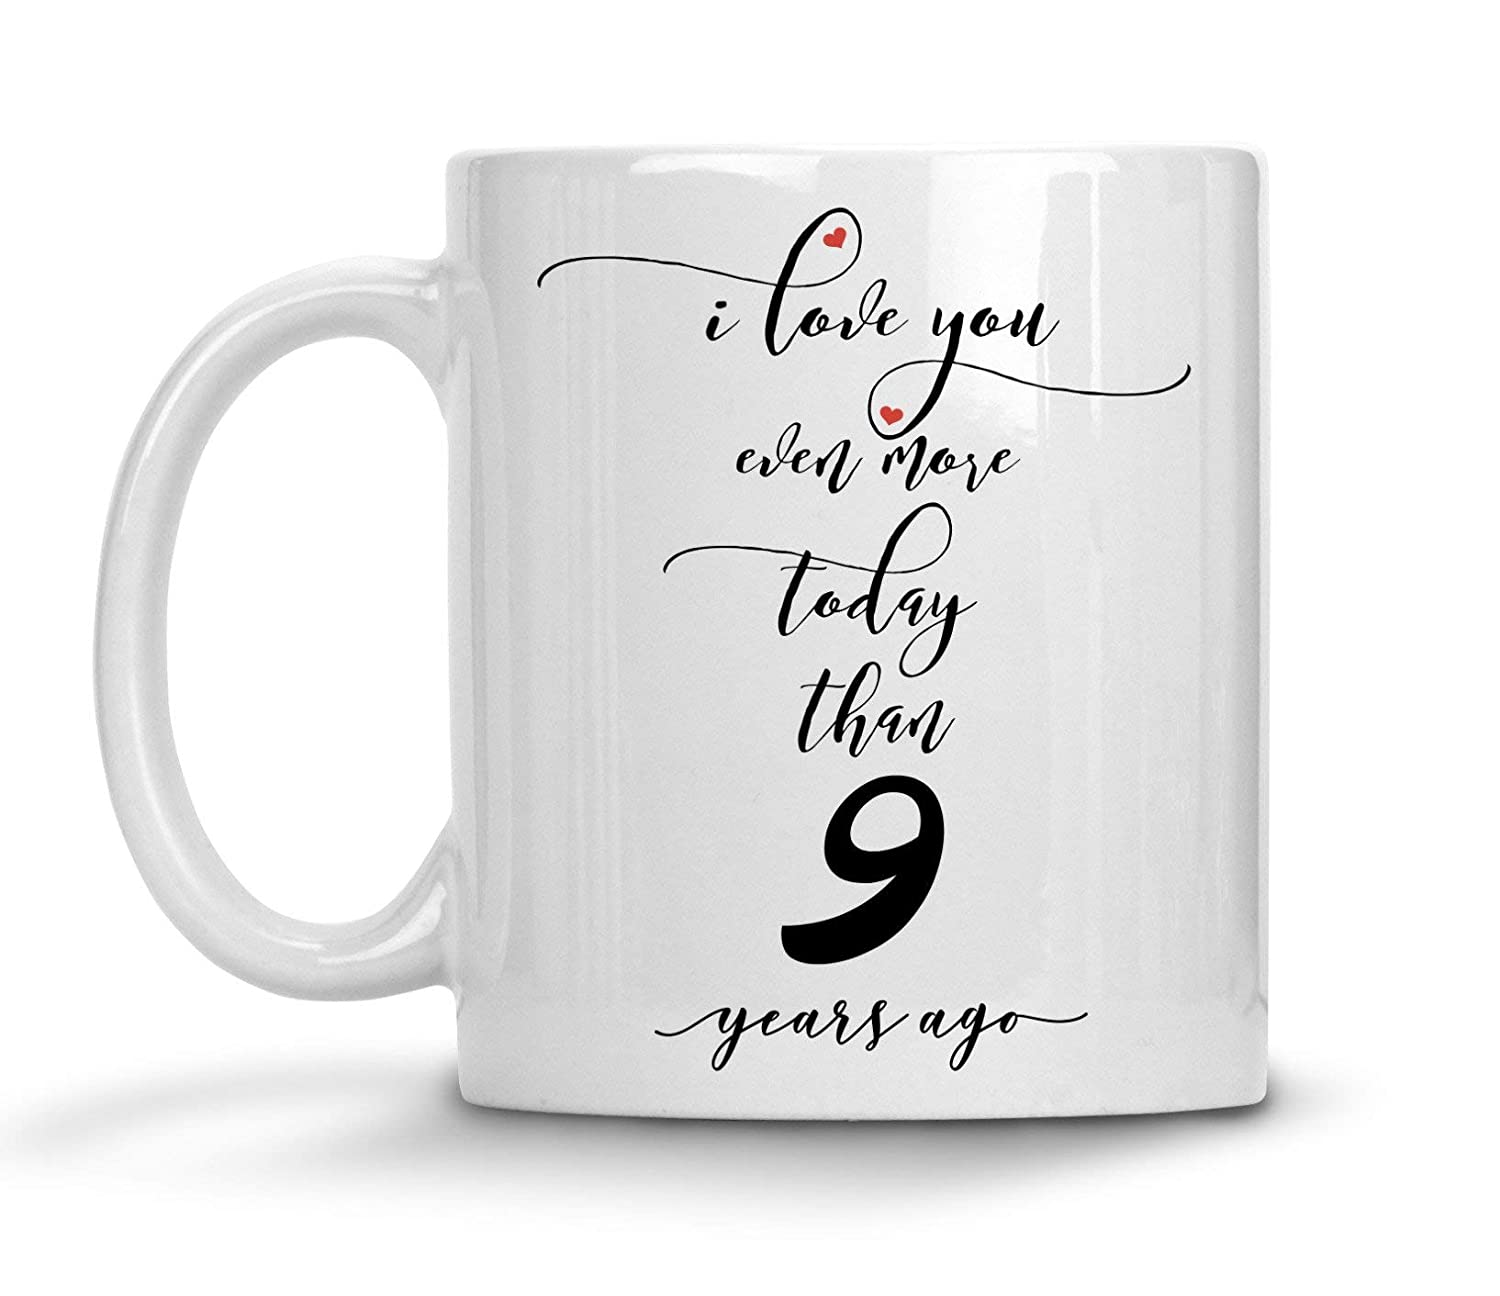 9th Wedding Anniversary Gift.Timug 9th Wedding Anniversary Gift For Him Personalized